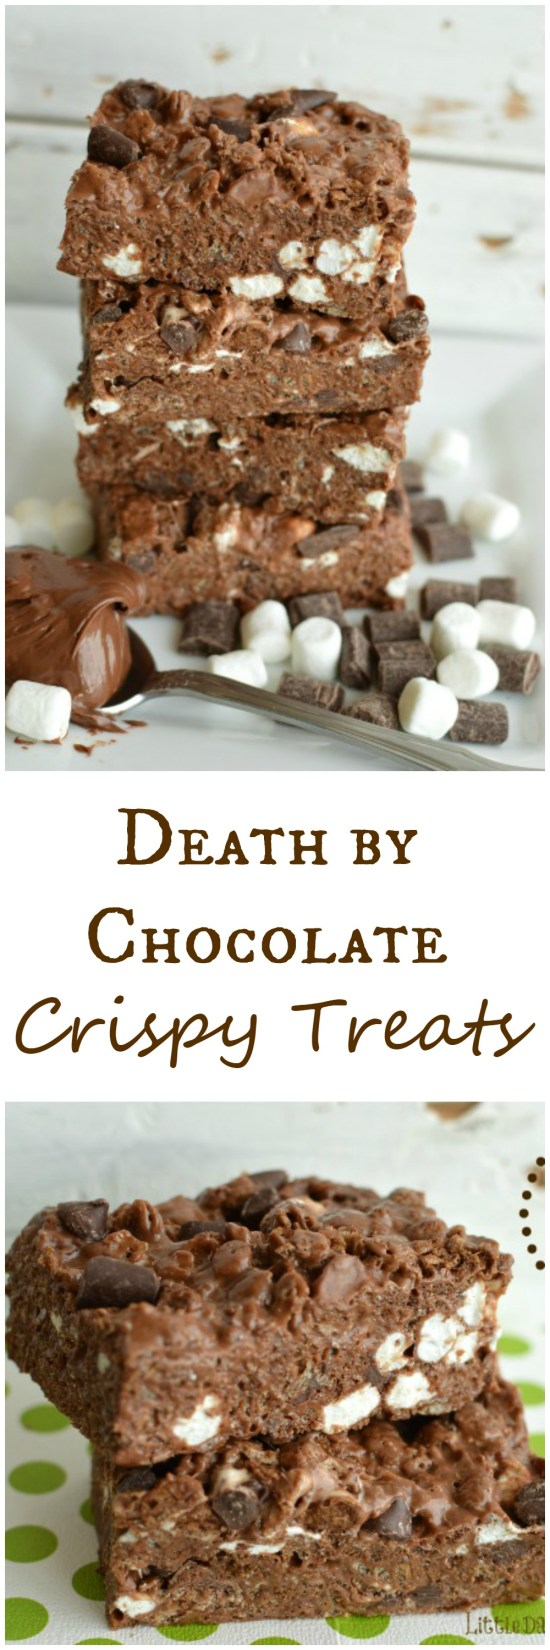 You can't go wrong by adding Nutella, chocolate chunks, chocolate chips, chocolate crispies to rice crispy treats! These are my new favorite! Little Dairy on the Prairie